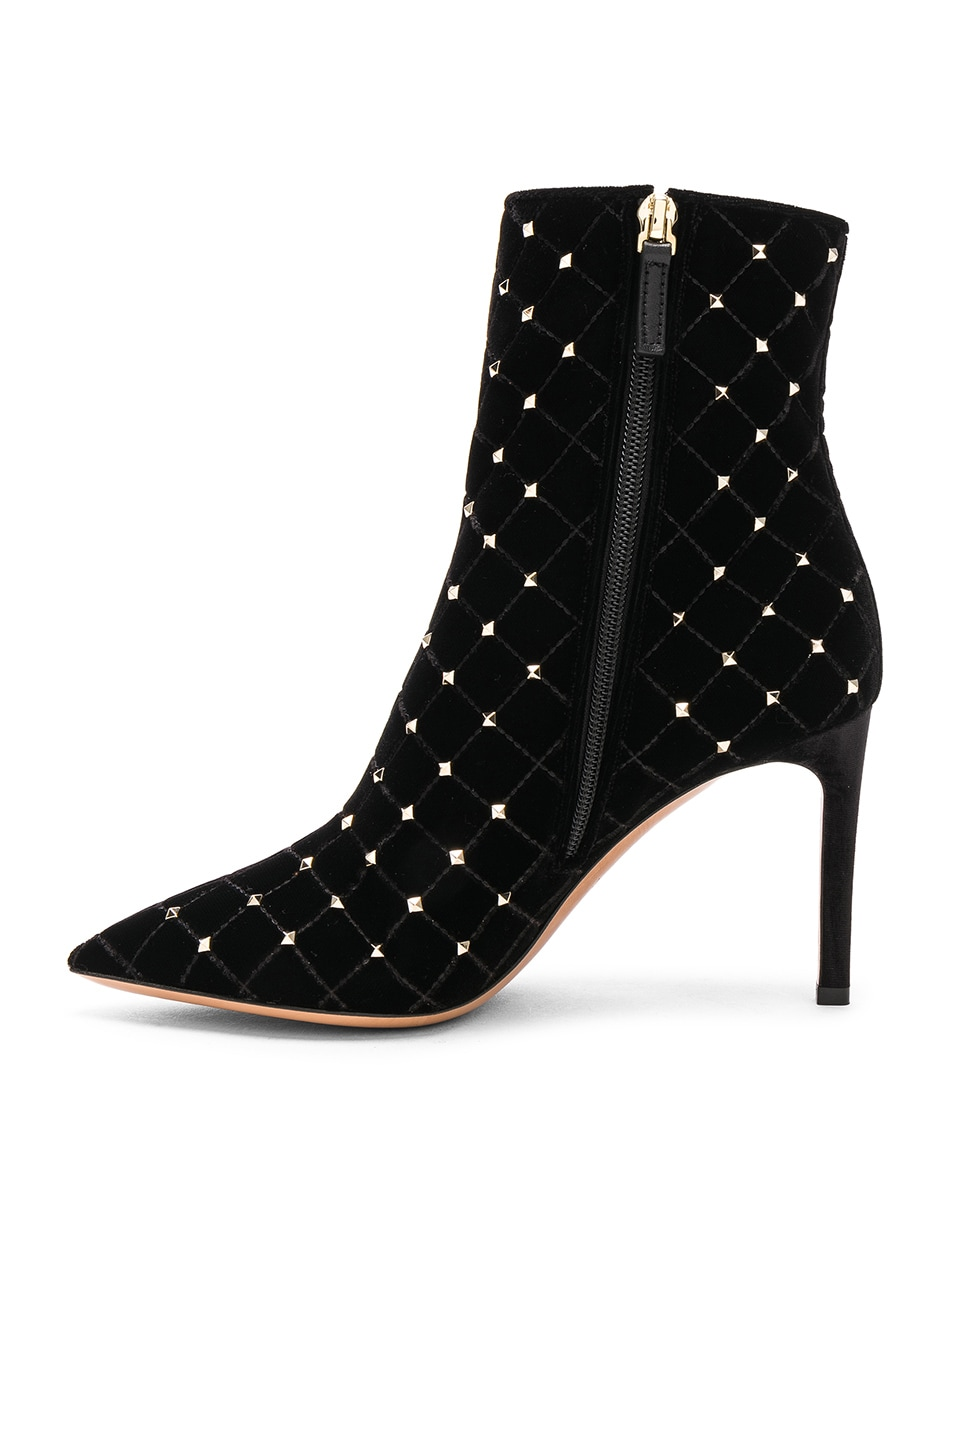 Image 5 of Valentino Velvet Rockstud Spike Ankle Boots in Black